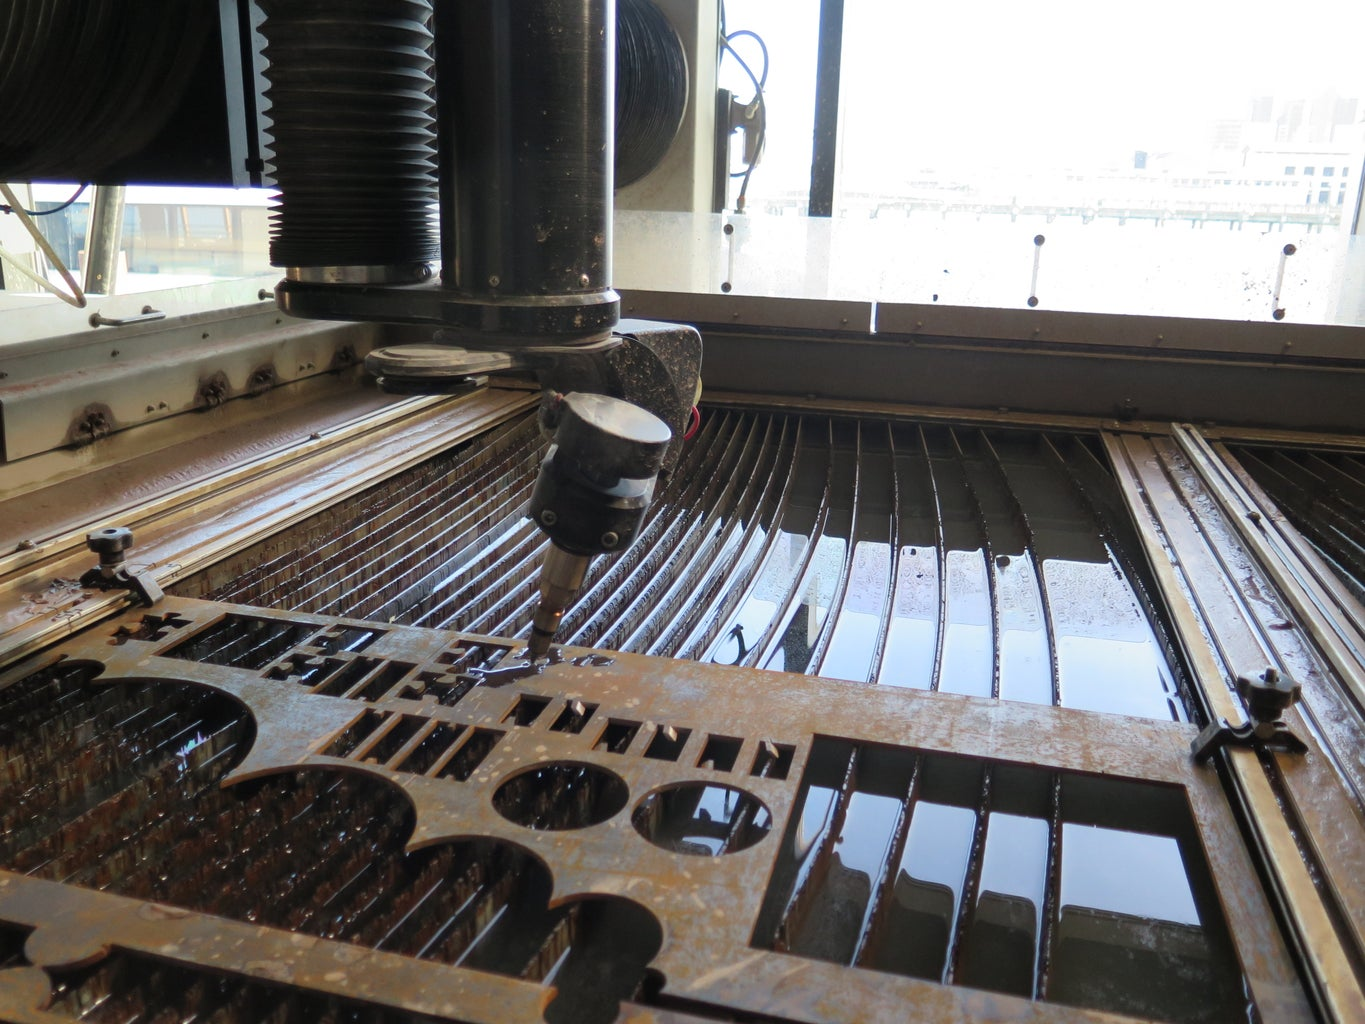 Making 5-Axis Cuts on an OMAX Waterjet